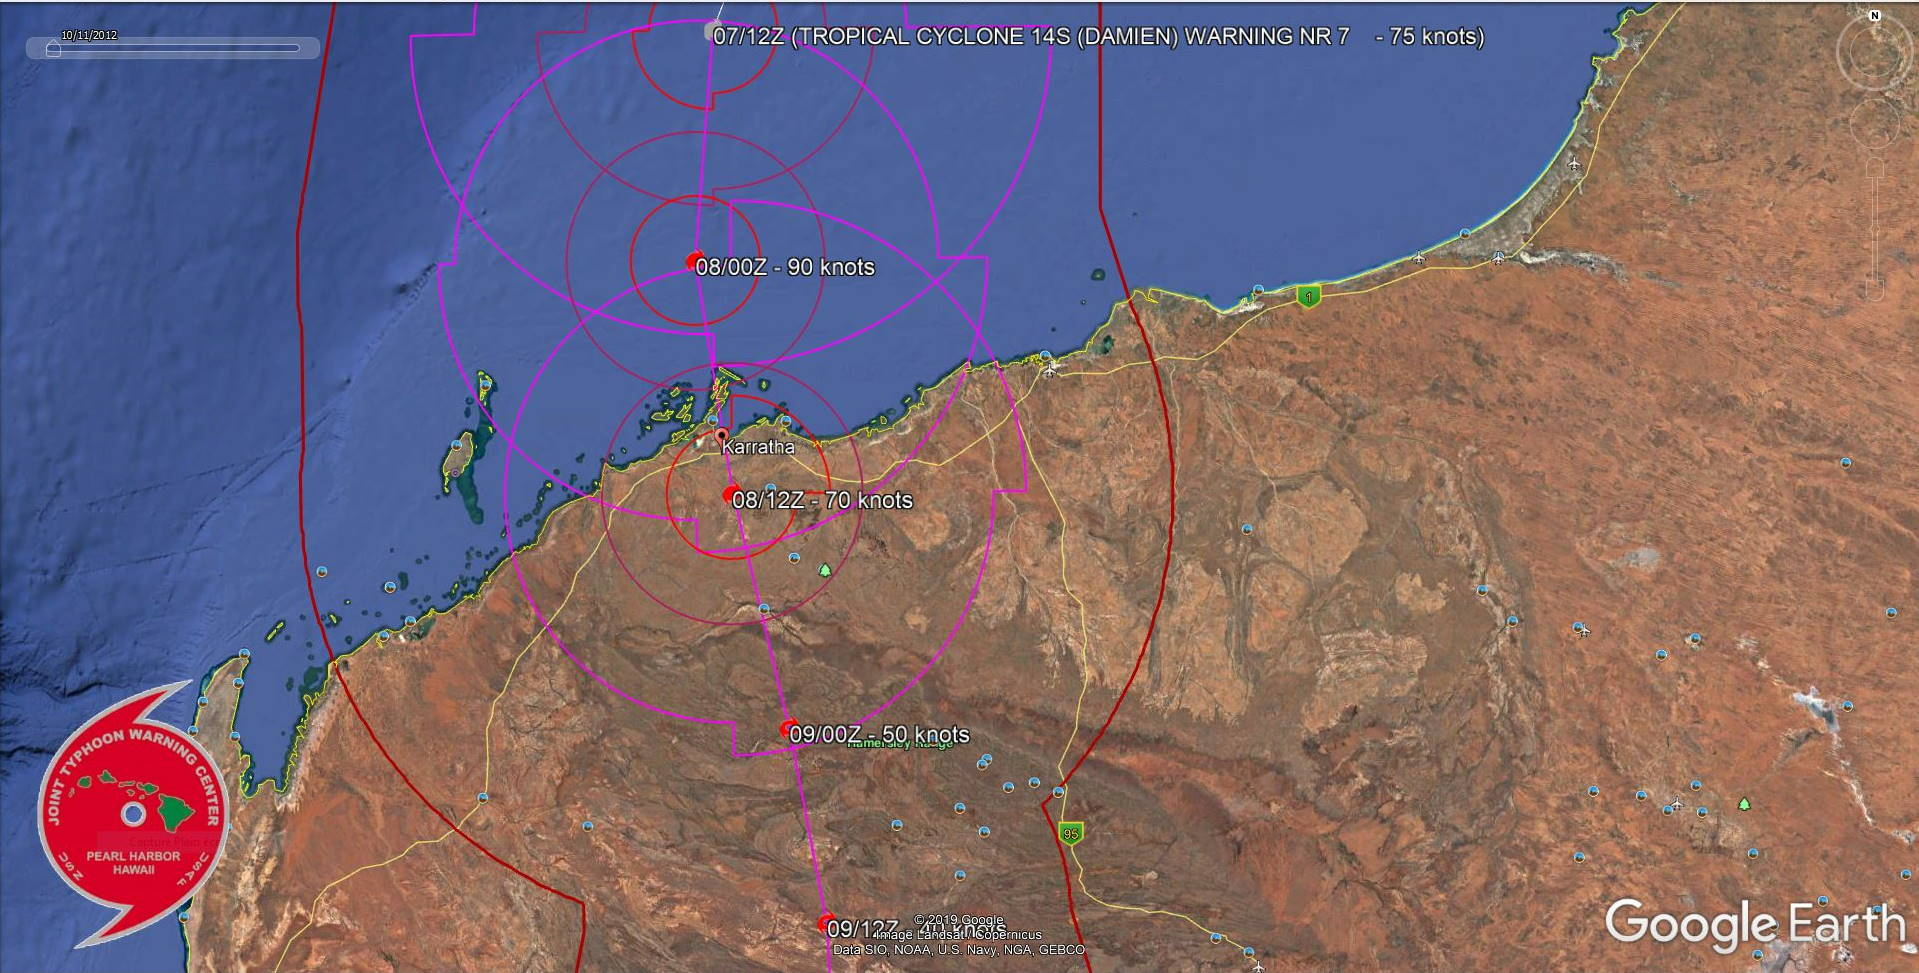 TC 14S(DAMIEN) CAT 1 US, intensifying, approaching Karratha, update at 07/15UTC